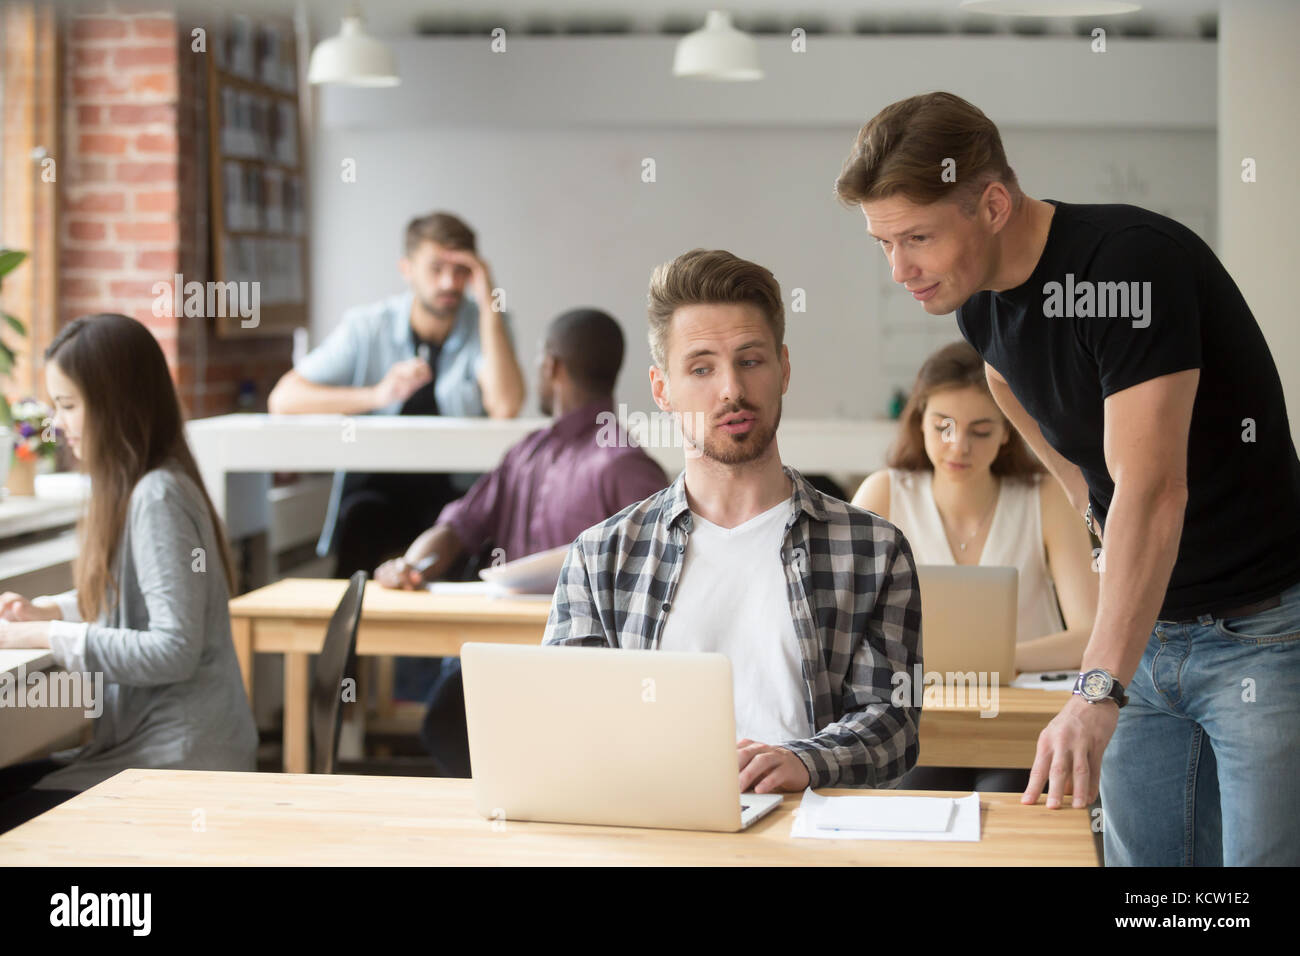 Casual entrepreneur explaining business project to his coworker. Two young employees discuss work-related goals - Stock Image